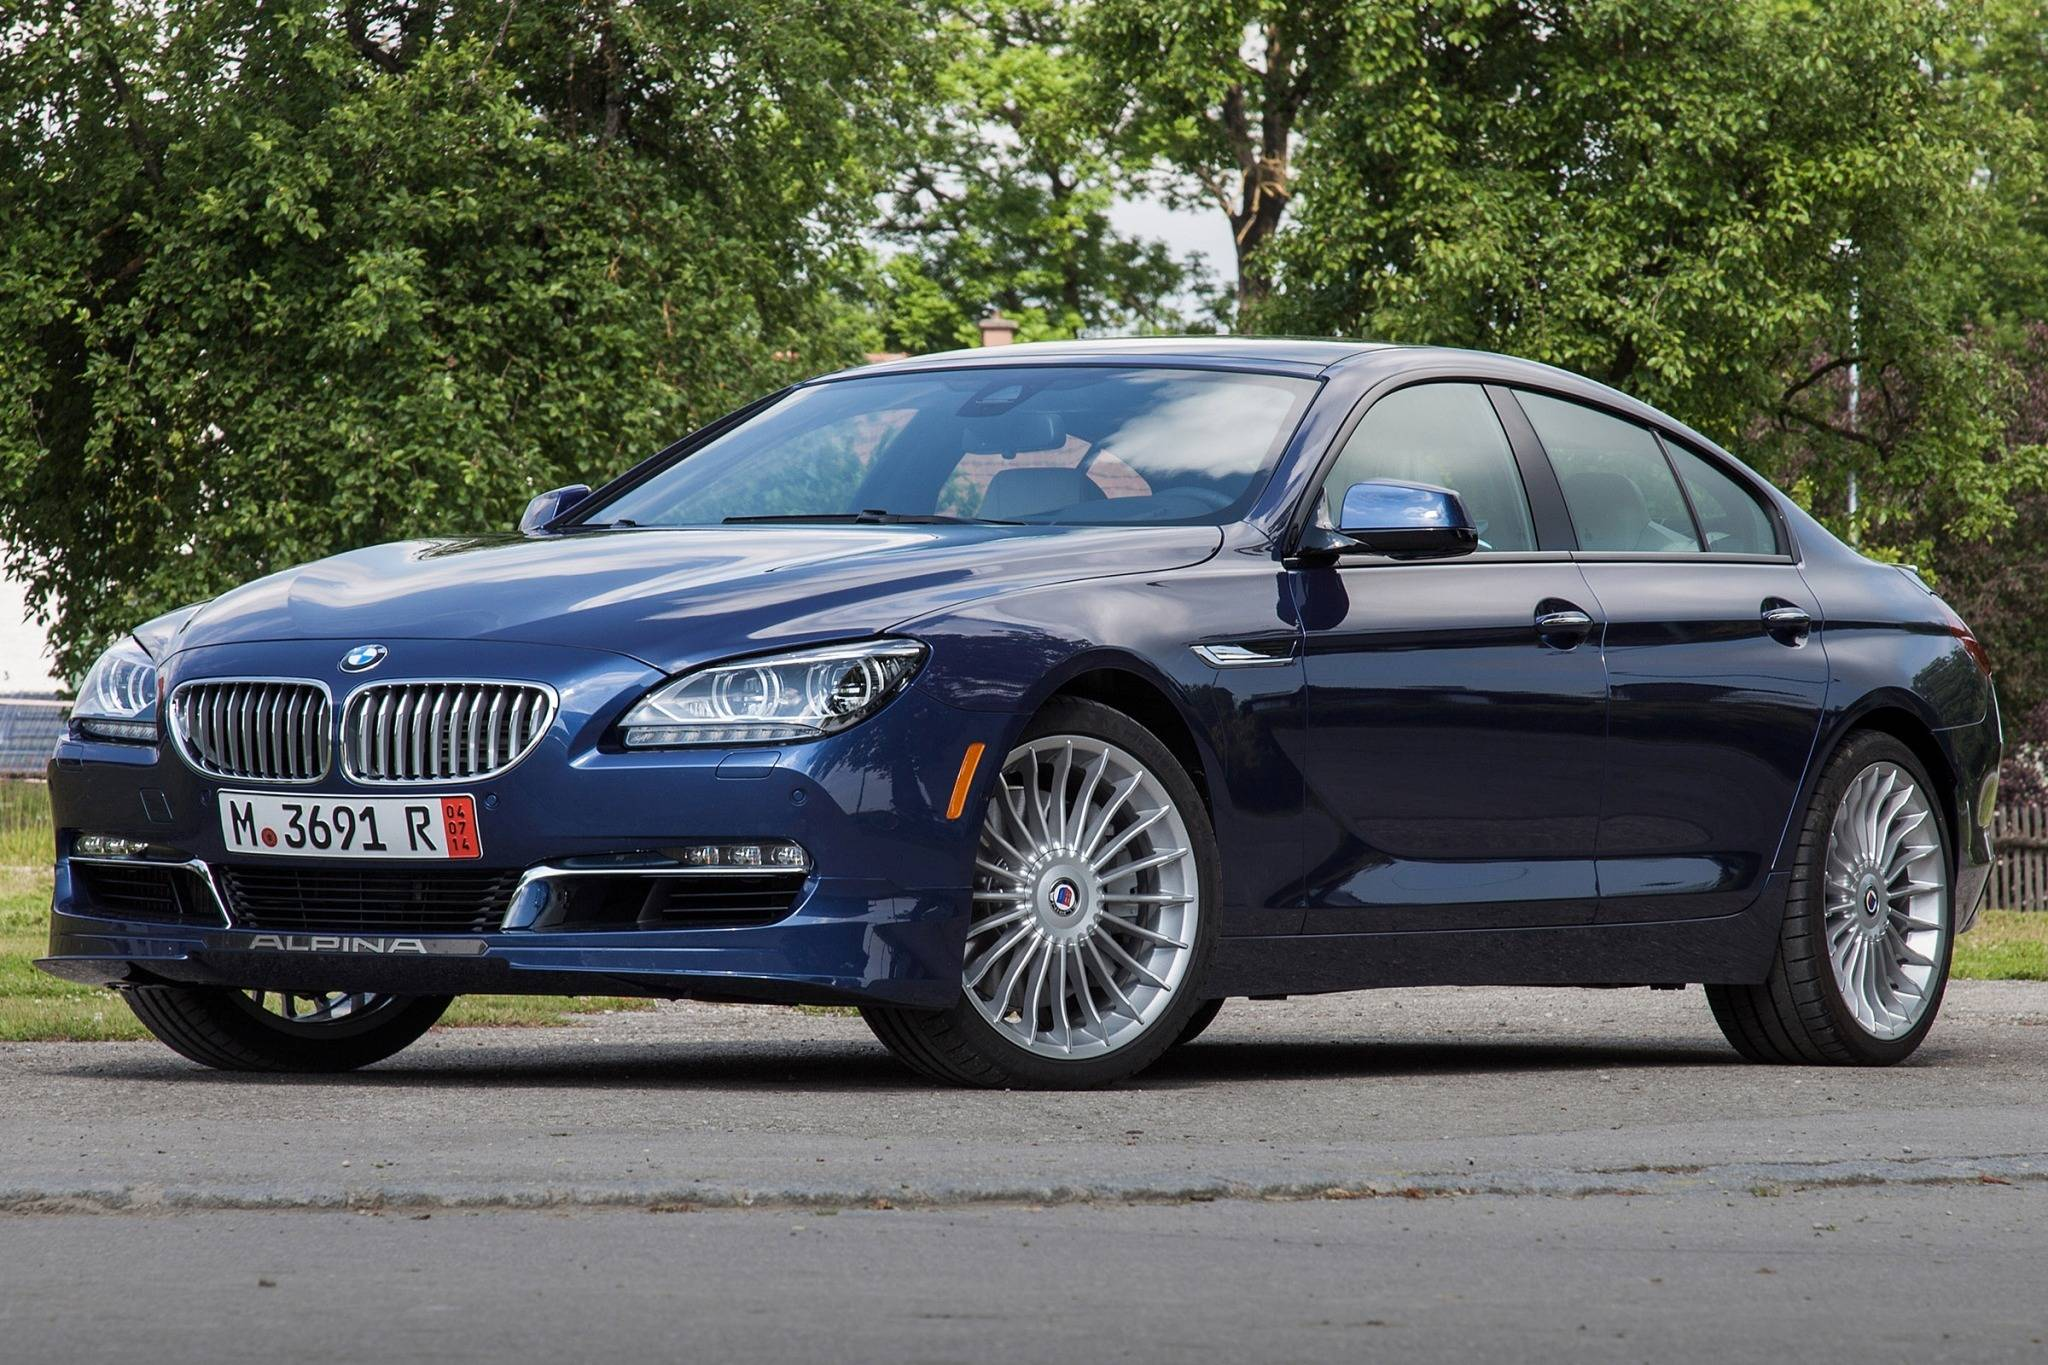 2017 Bmw Alpina B6 Gran Coupe #5